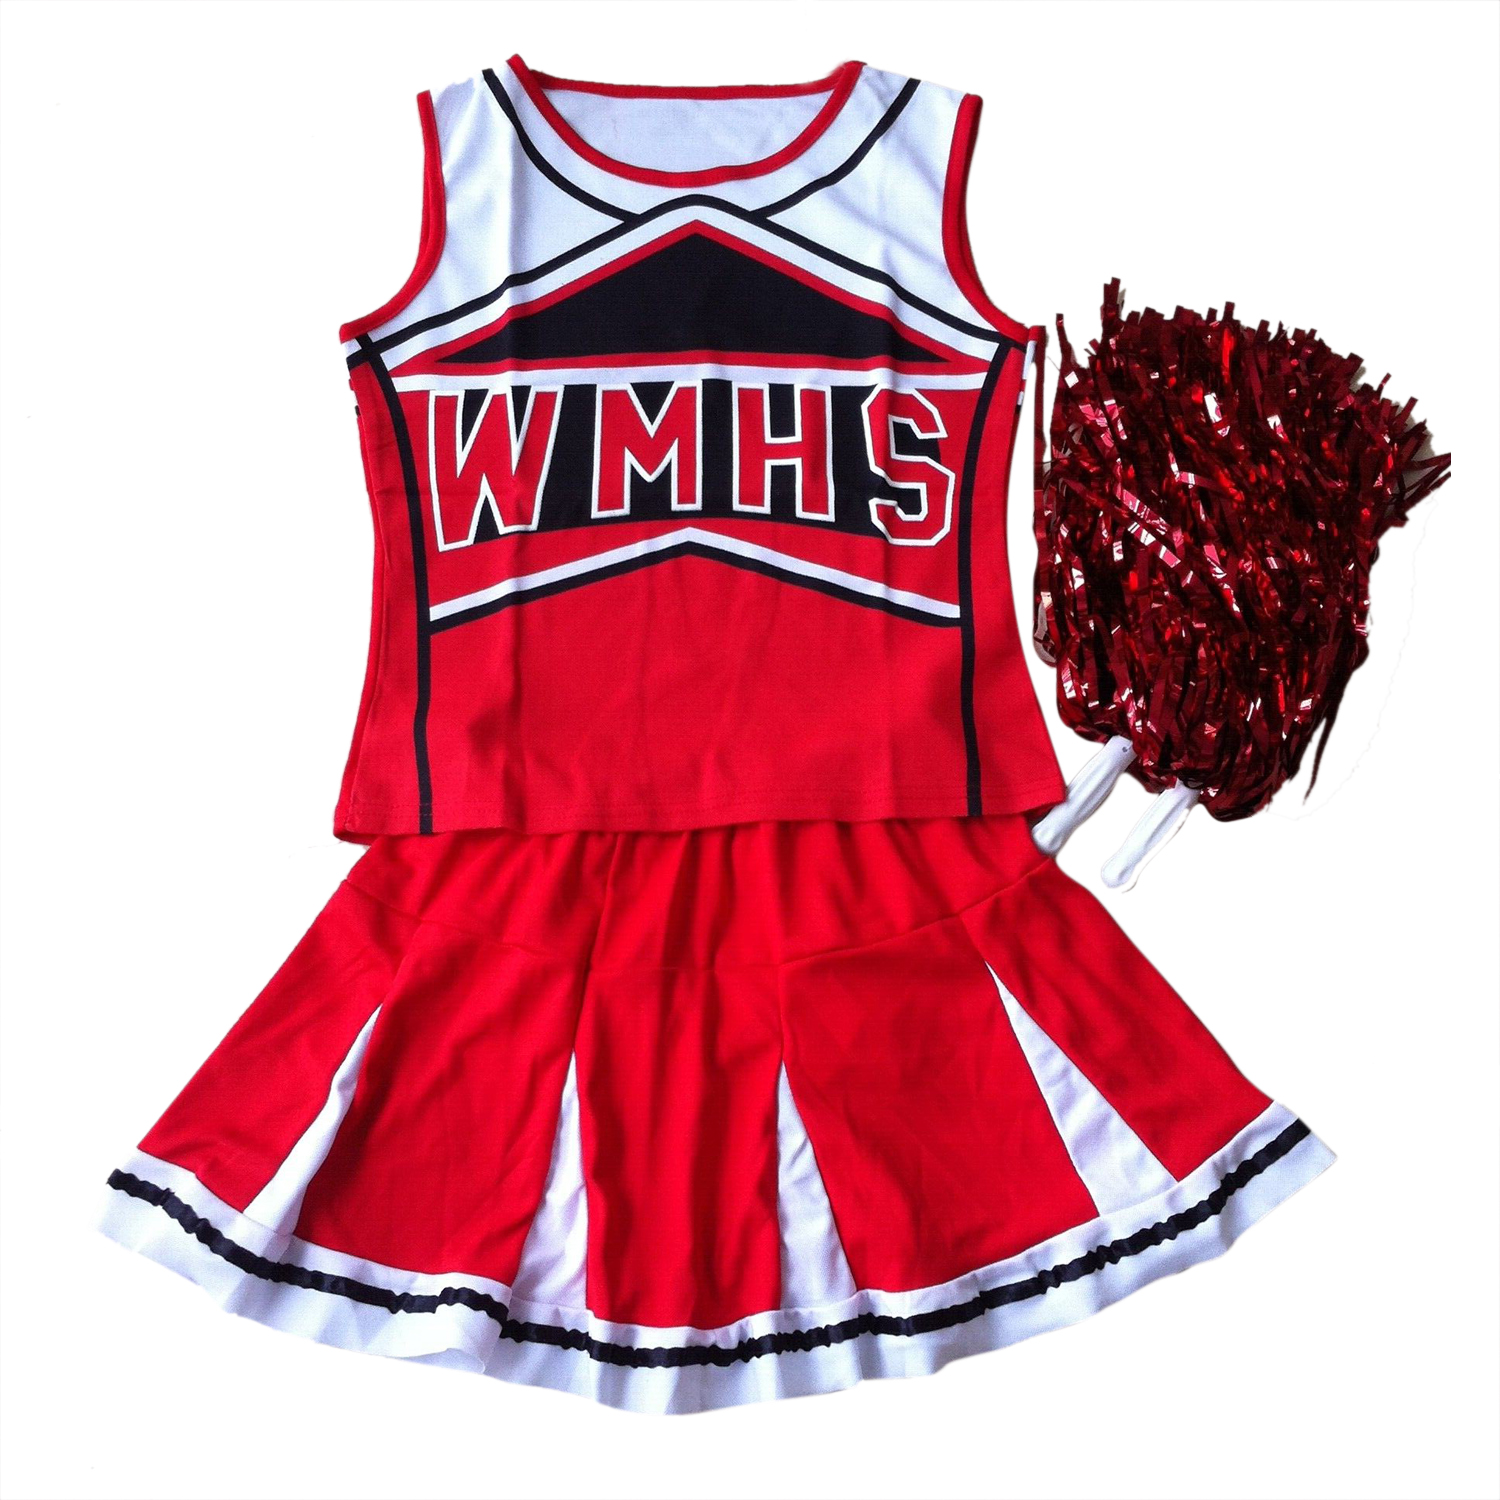 New Tank top Petticoat Pom cheerleader cheer leaders S (30-32) 2 piece suit new red costume